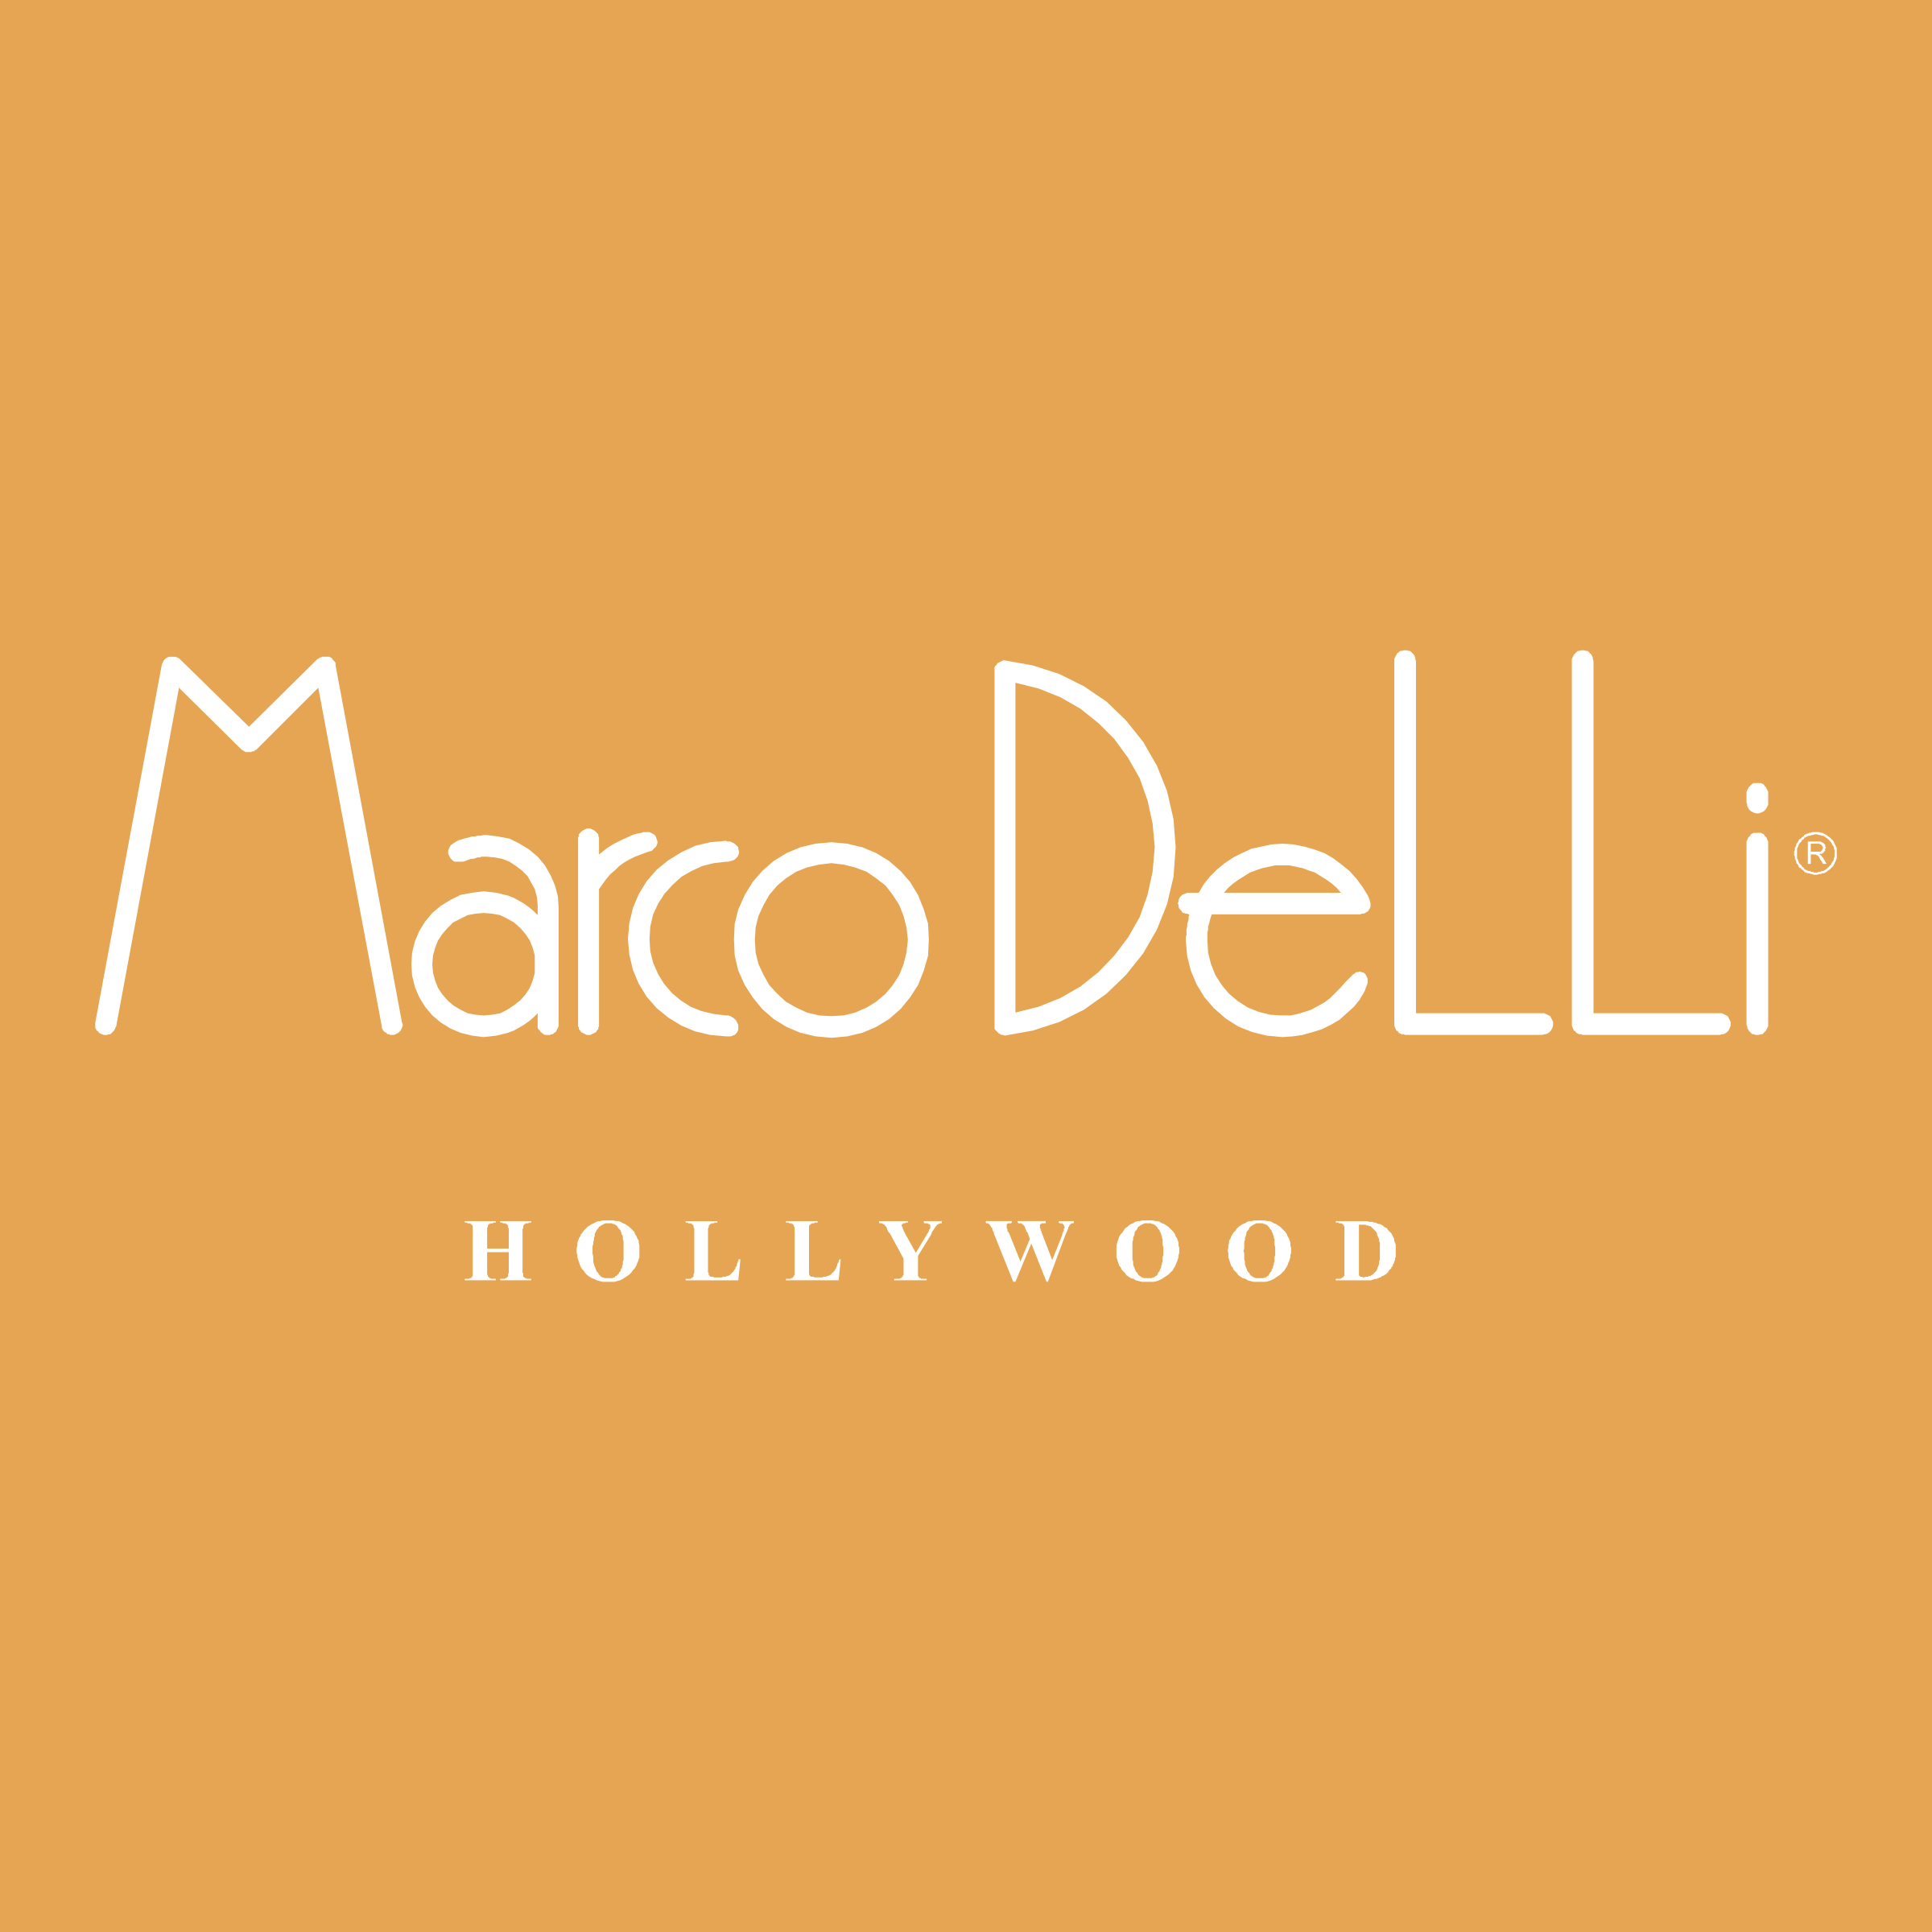 Marco Delli Logo PNG Transparent & SVG Vector - Freebie Supply